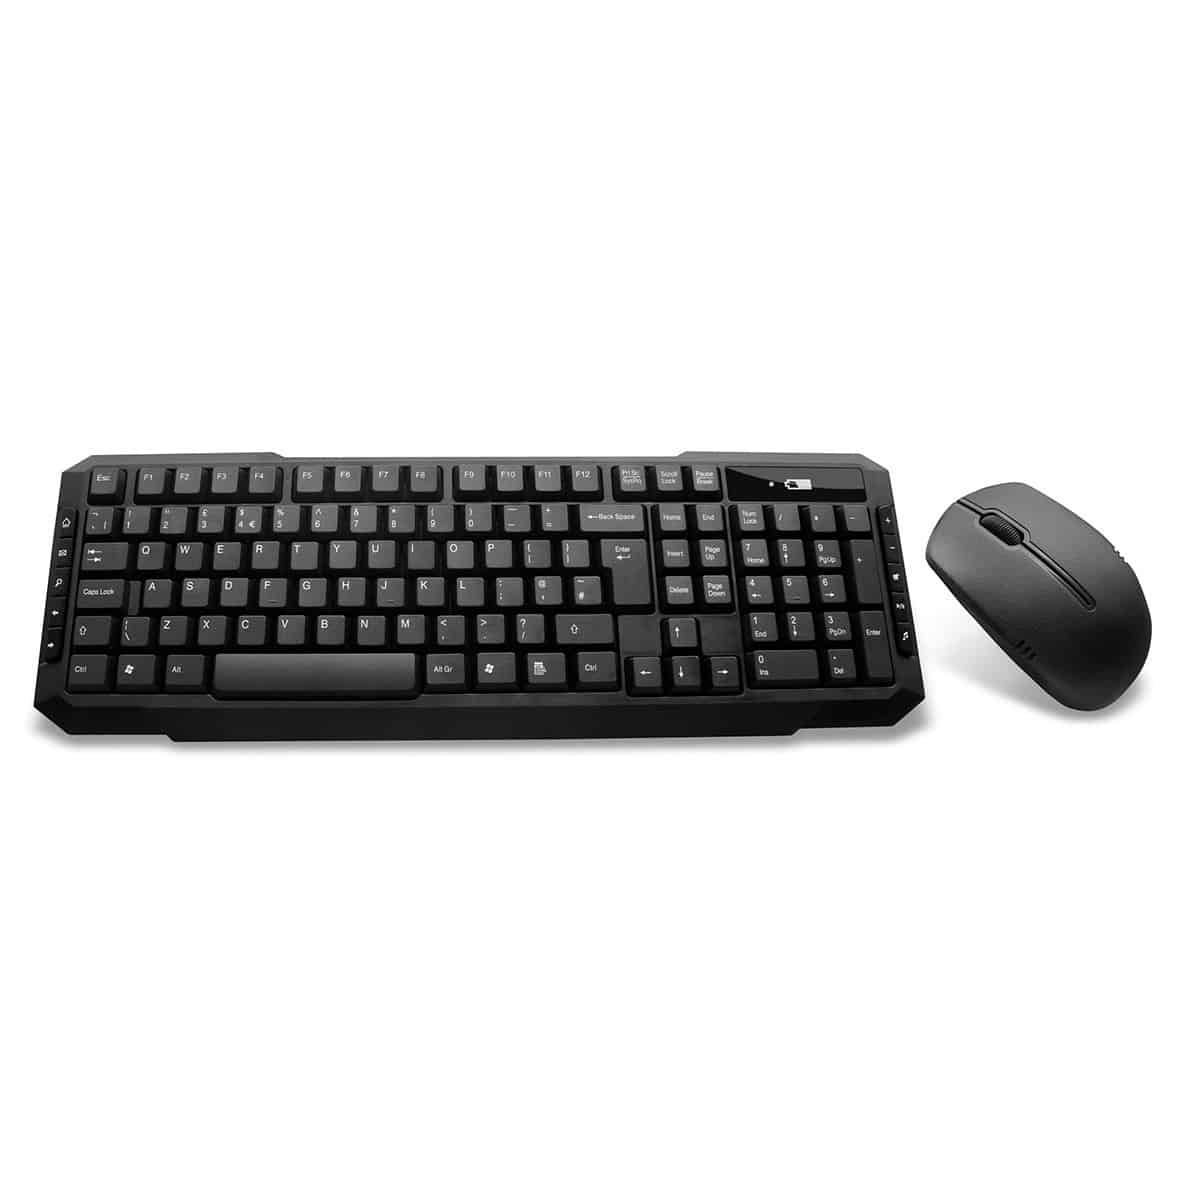 CiT – Ez-Touch Wireless Keyboard and Mouse Combo set black